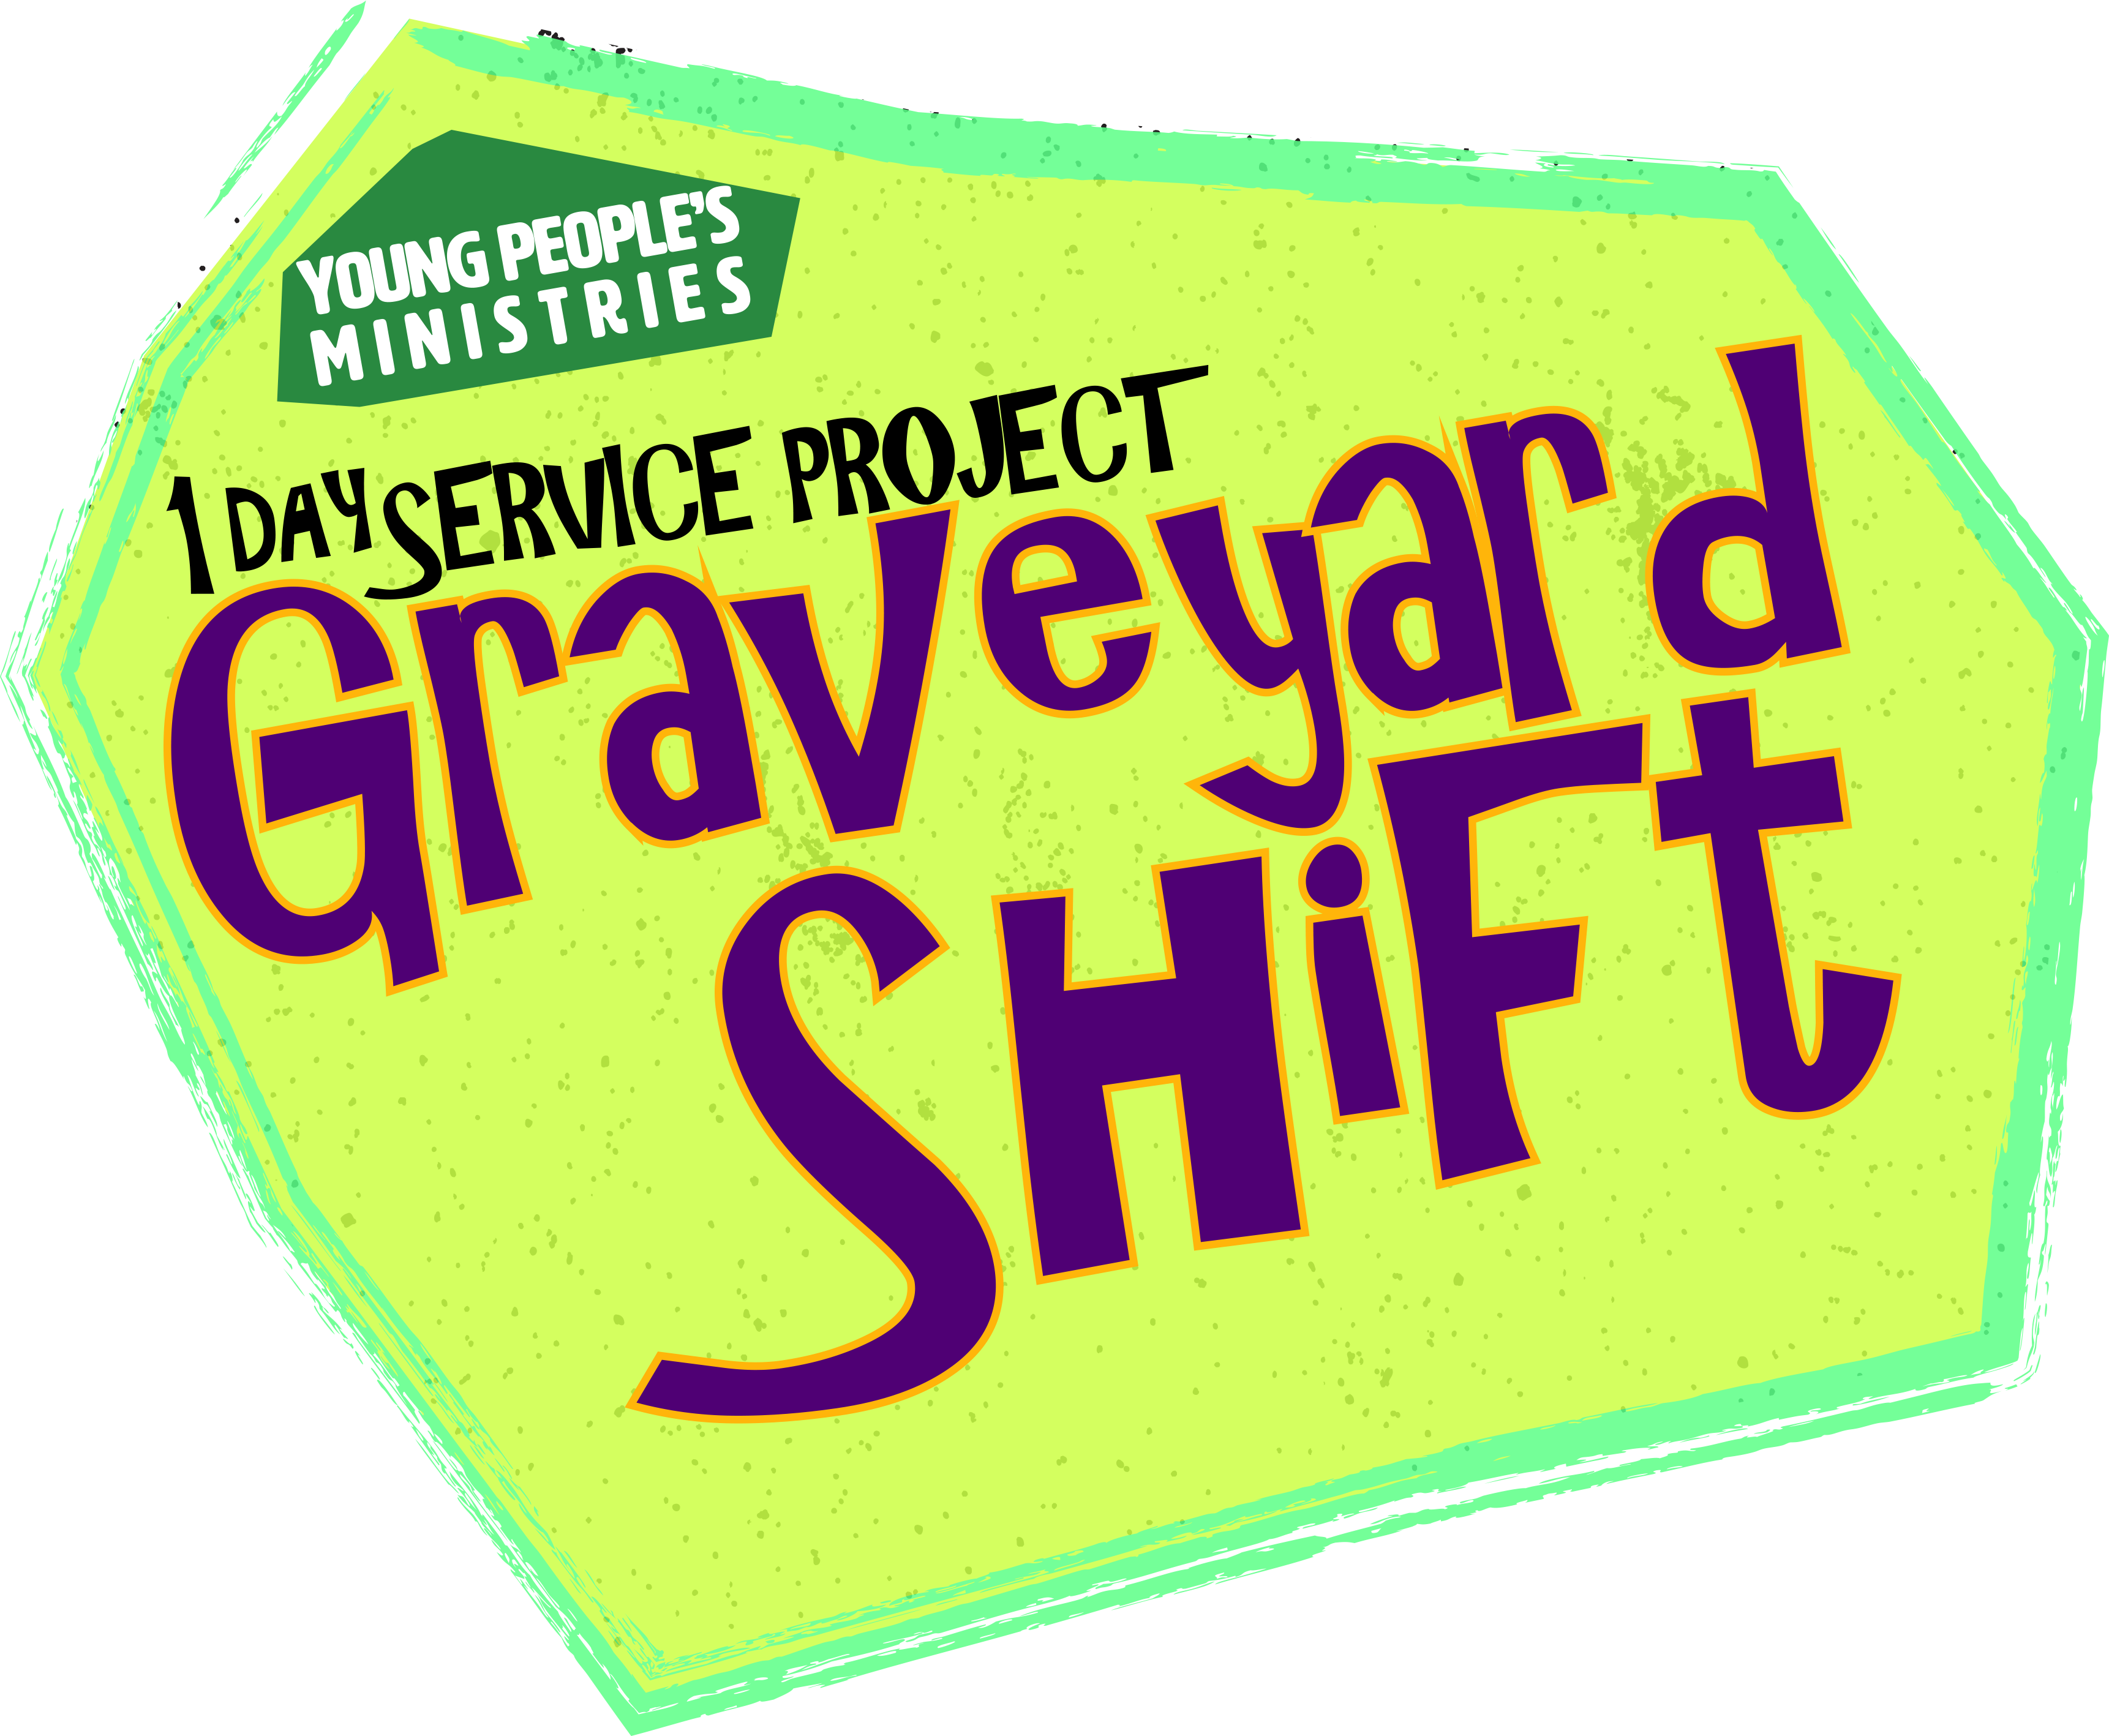 One Day Service Project 2018: Graveyard Shift